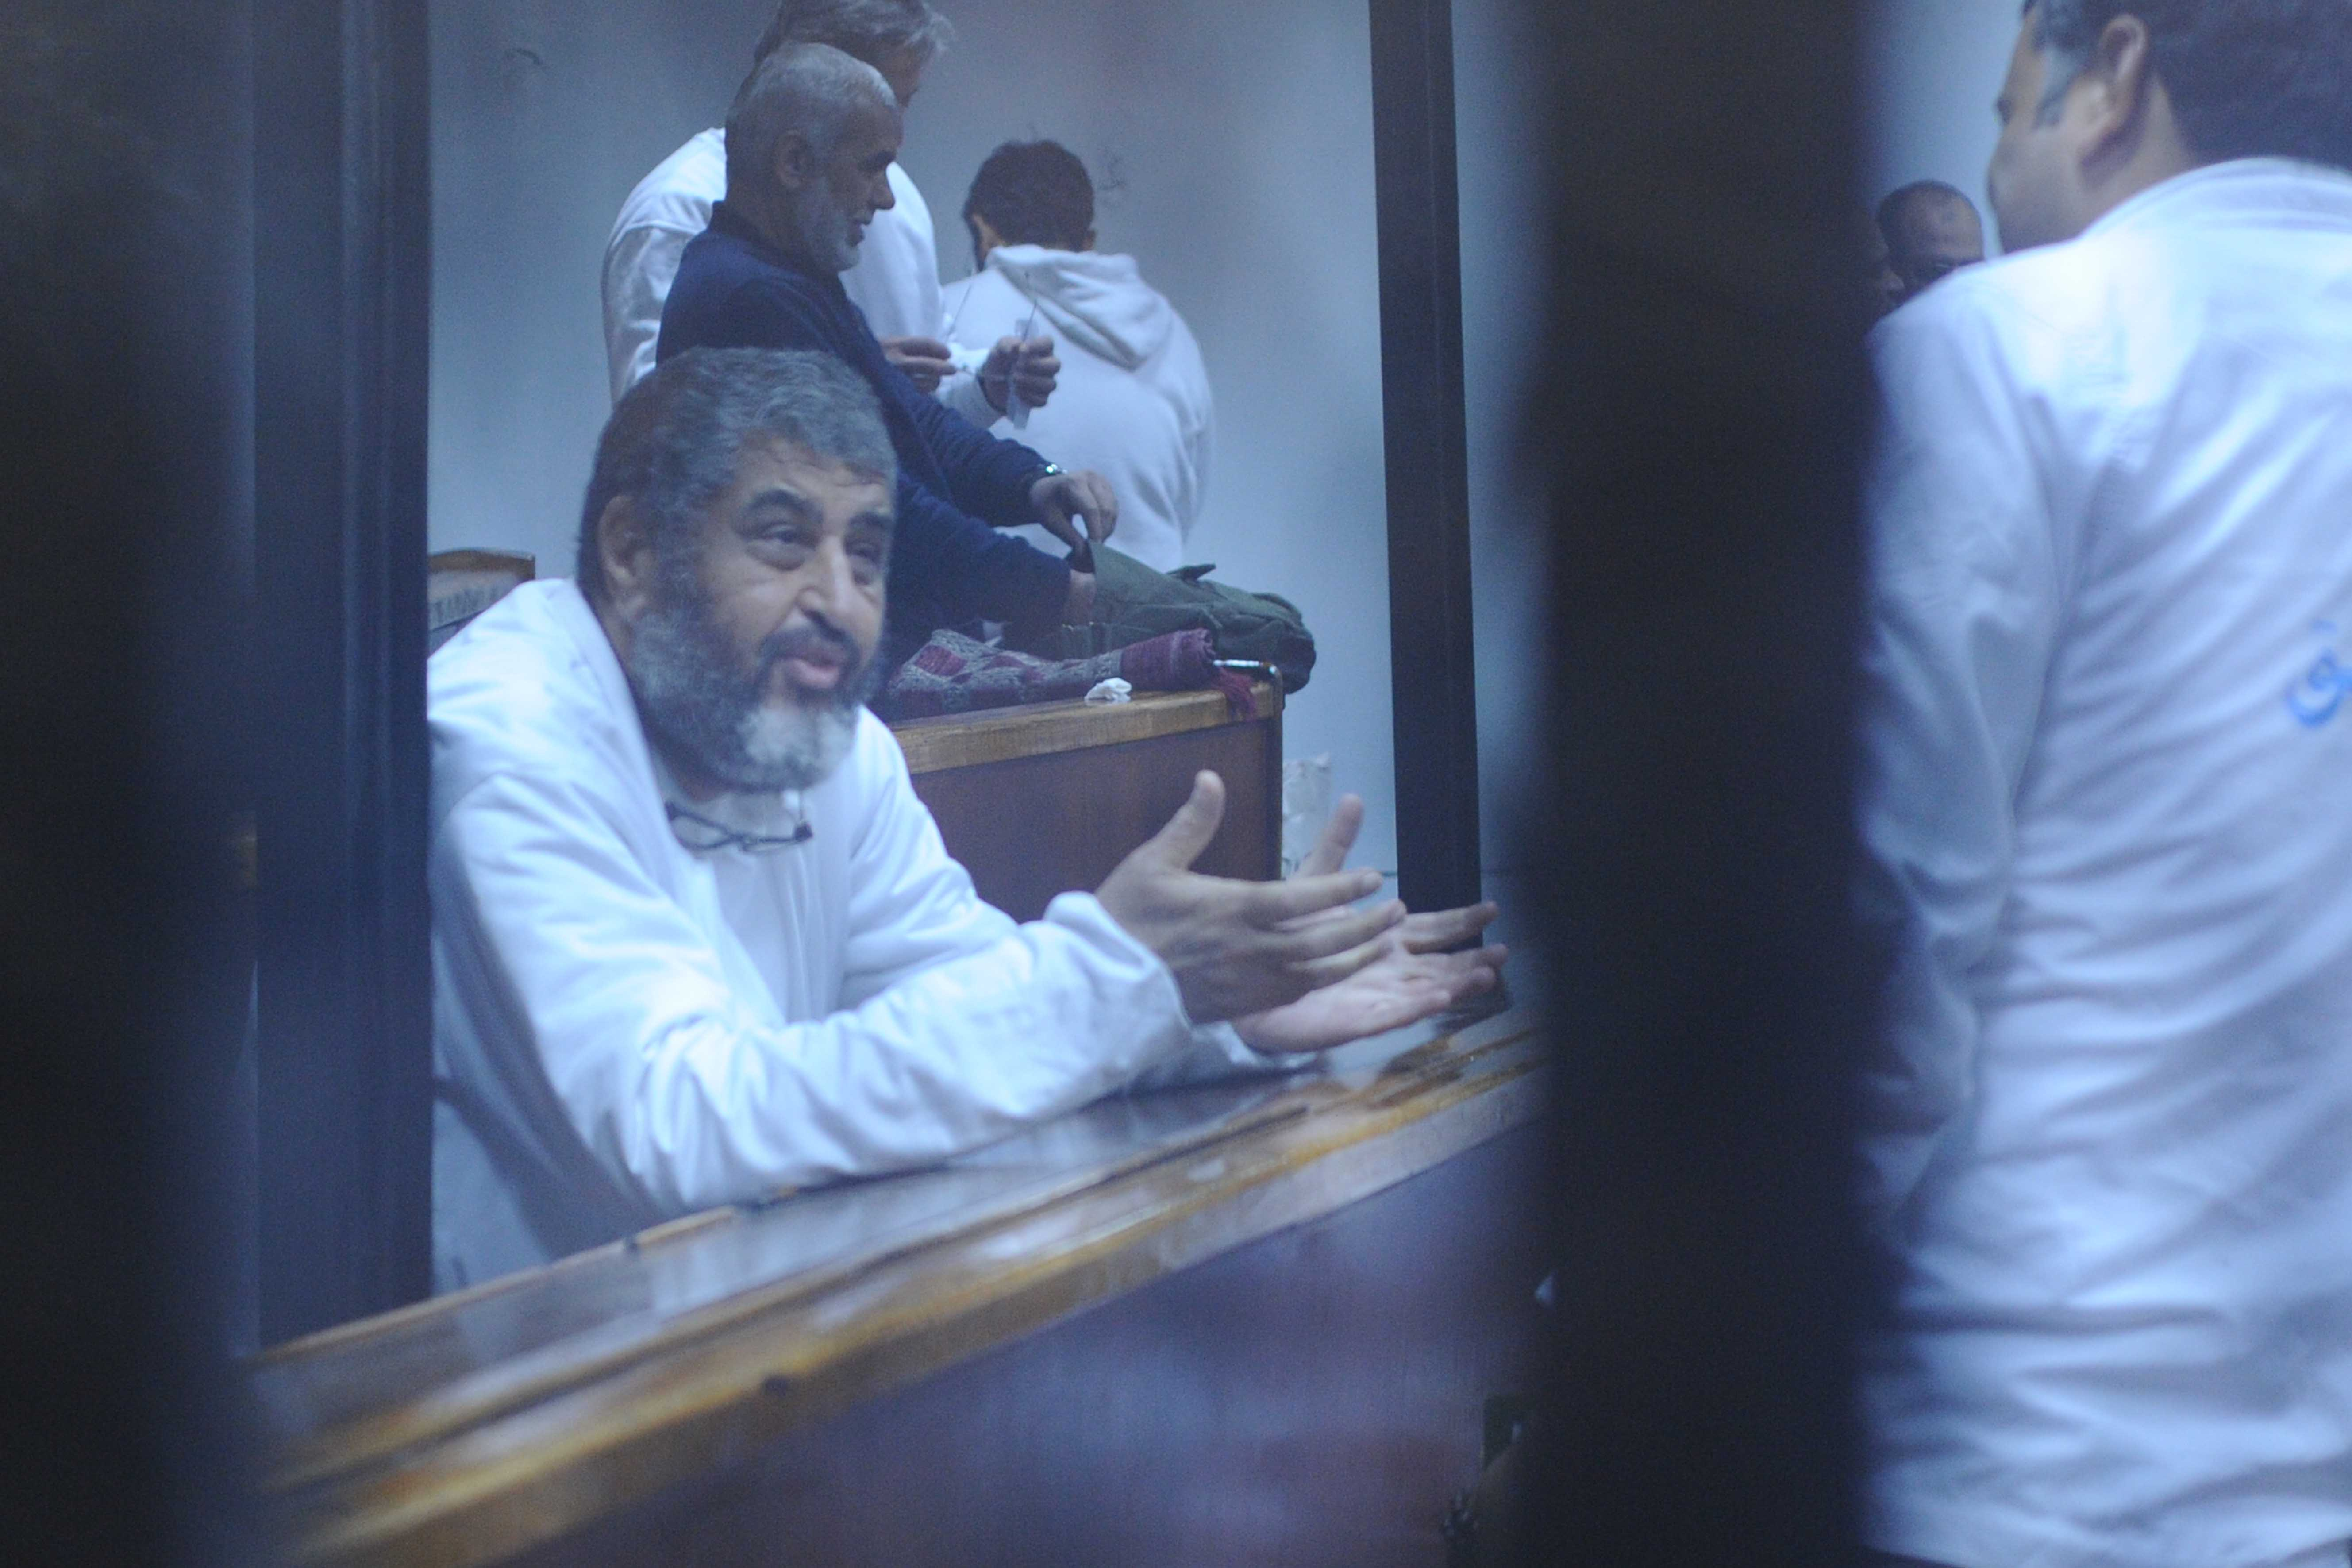 Khairat Saad el-Shater is among the Muslim Brotherhood defendants in the espionage case (Photo by Ahmed Al-Malky)